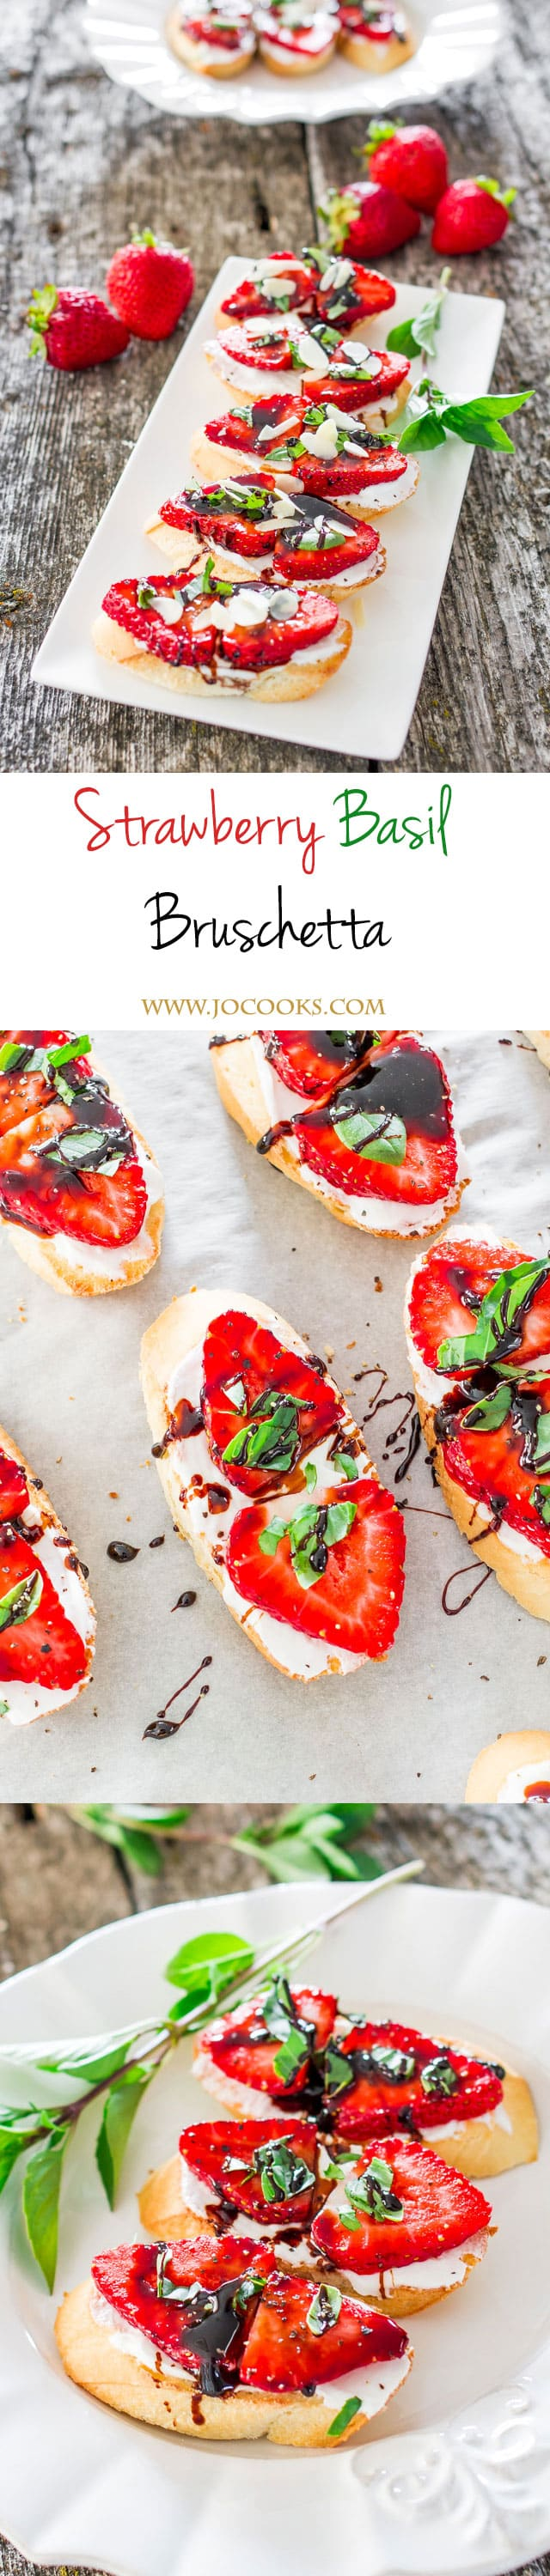 strawberry-basil-bruschetta-collage